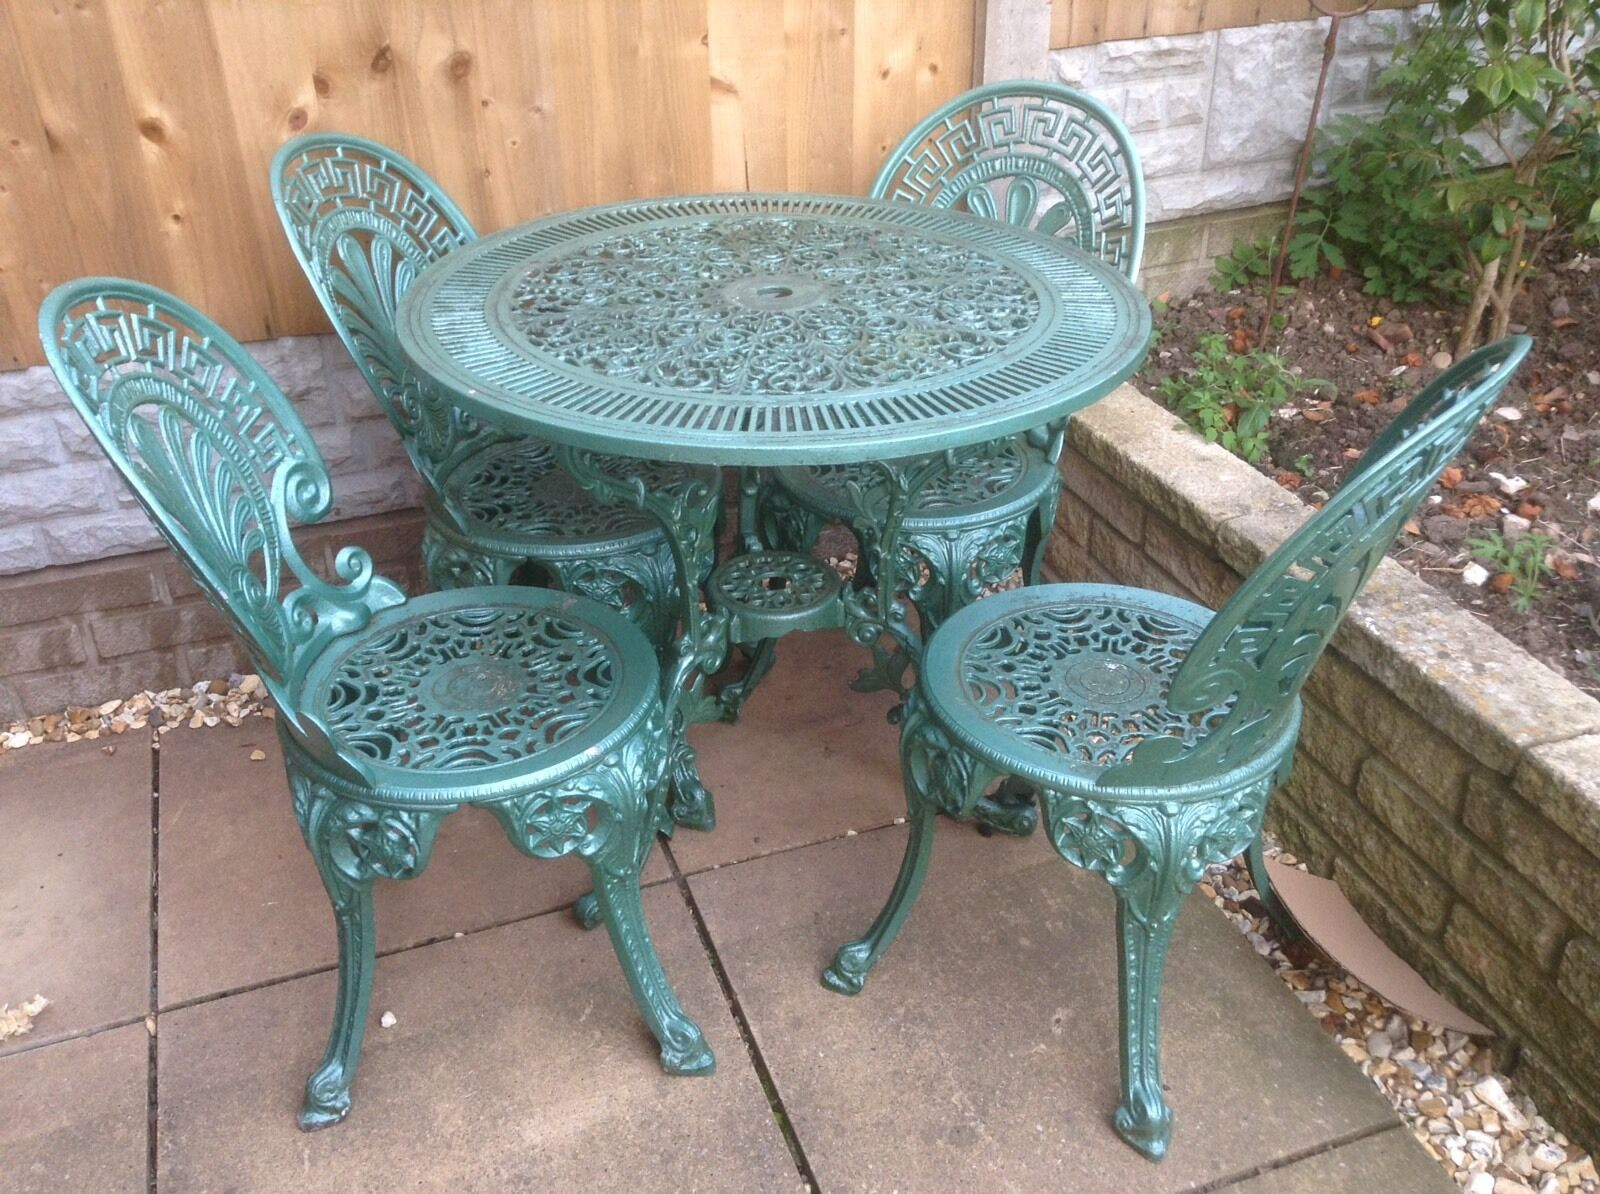 Vintage Cast Iron Garden Furniture Table And Chairs • £147 00 Pic UK